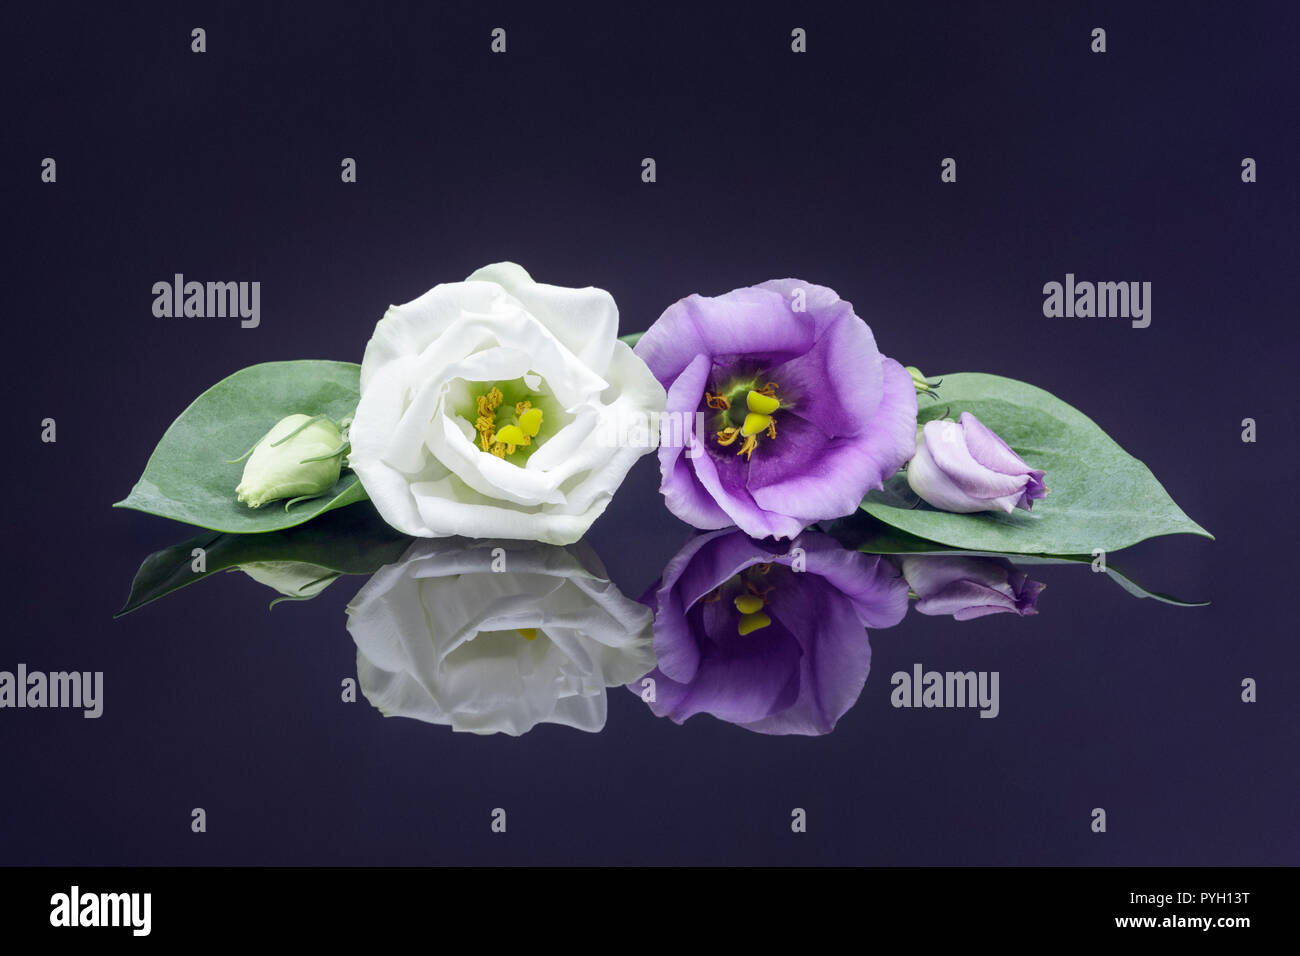 White and purple Lisianthus blooms - Stock Image